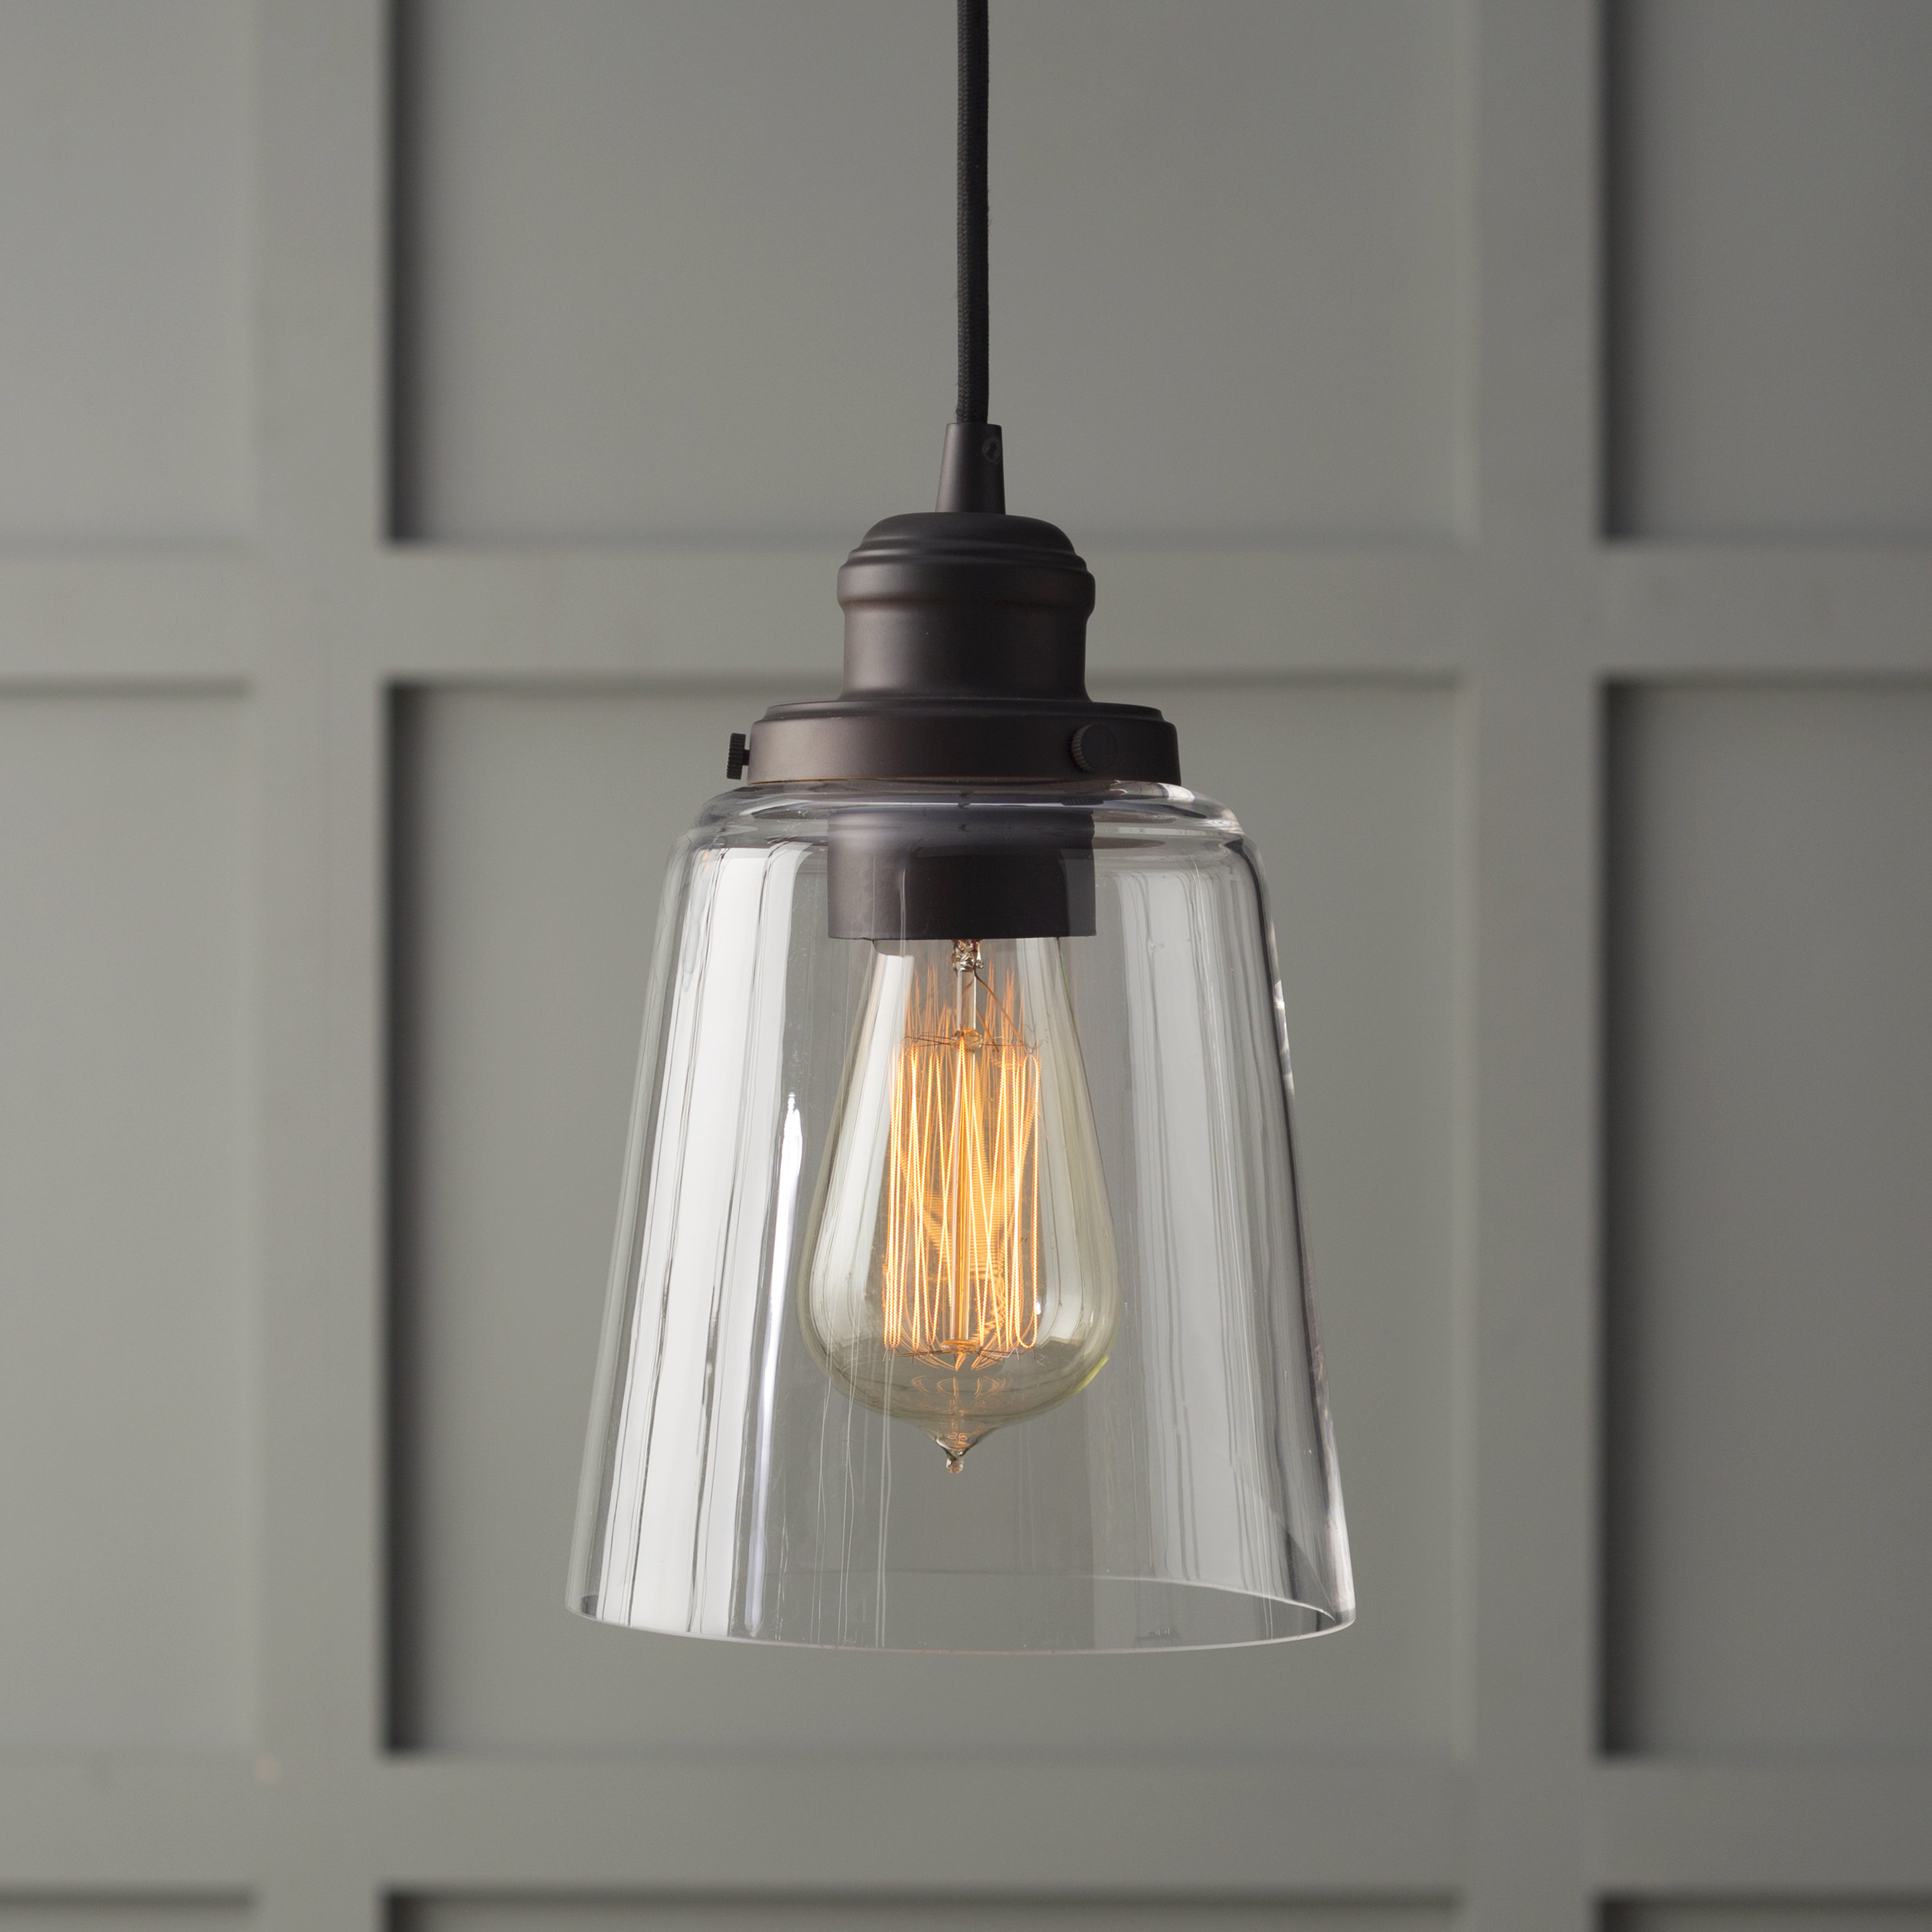 Birch Lane™ Heritage 1 Light Single Bell Pendant For Well Liked Nadeau 1 Light Single Cone Pendants (View 2 of 25)